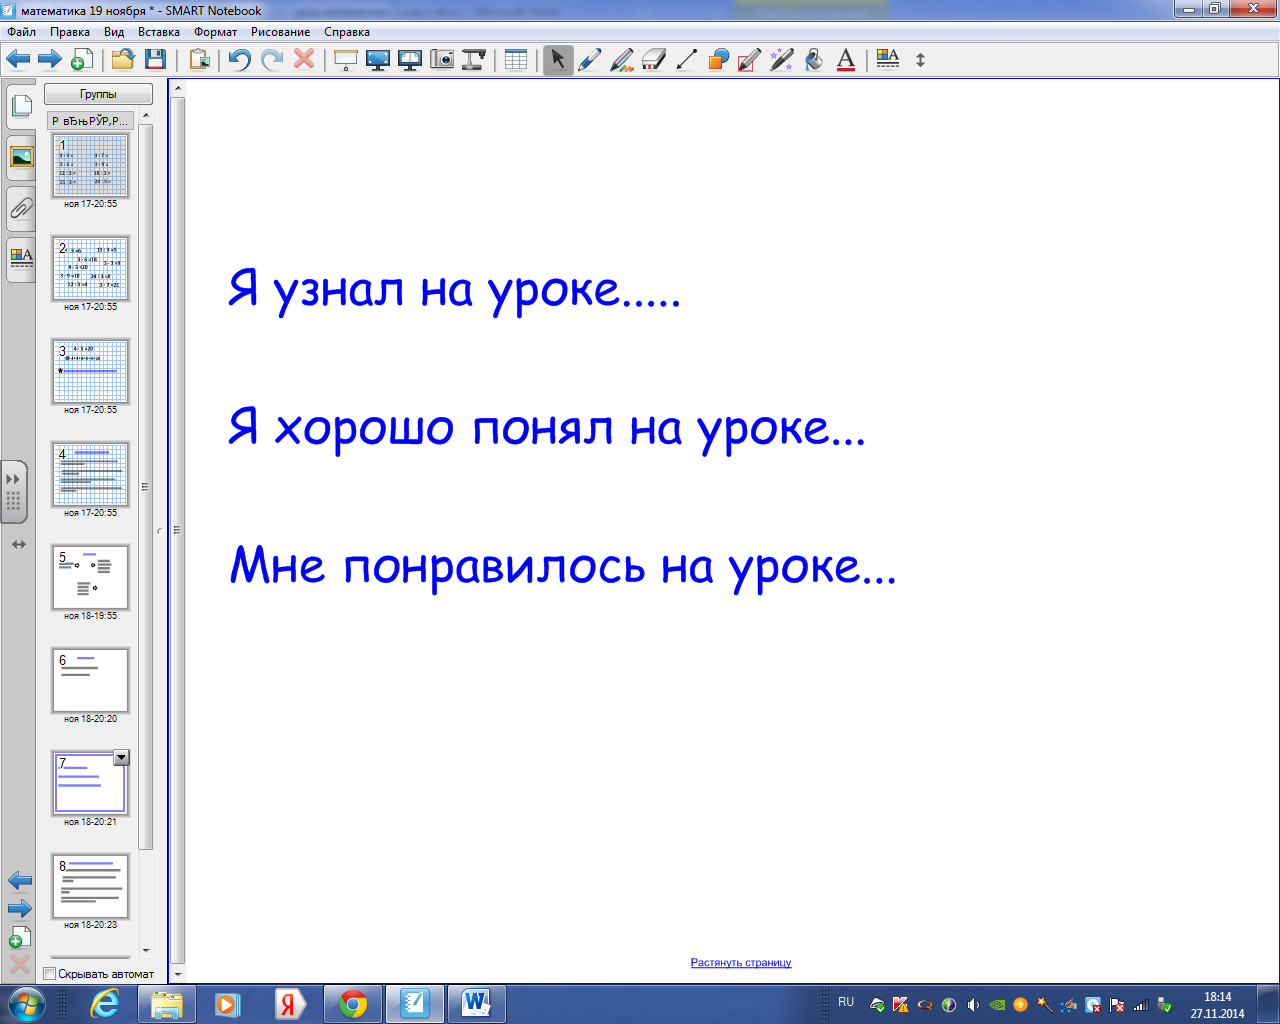 hello_html_m10407502.png